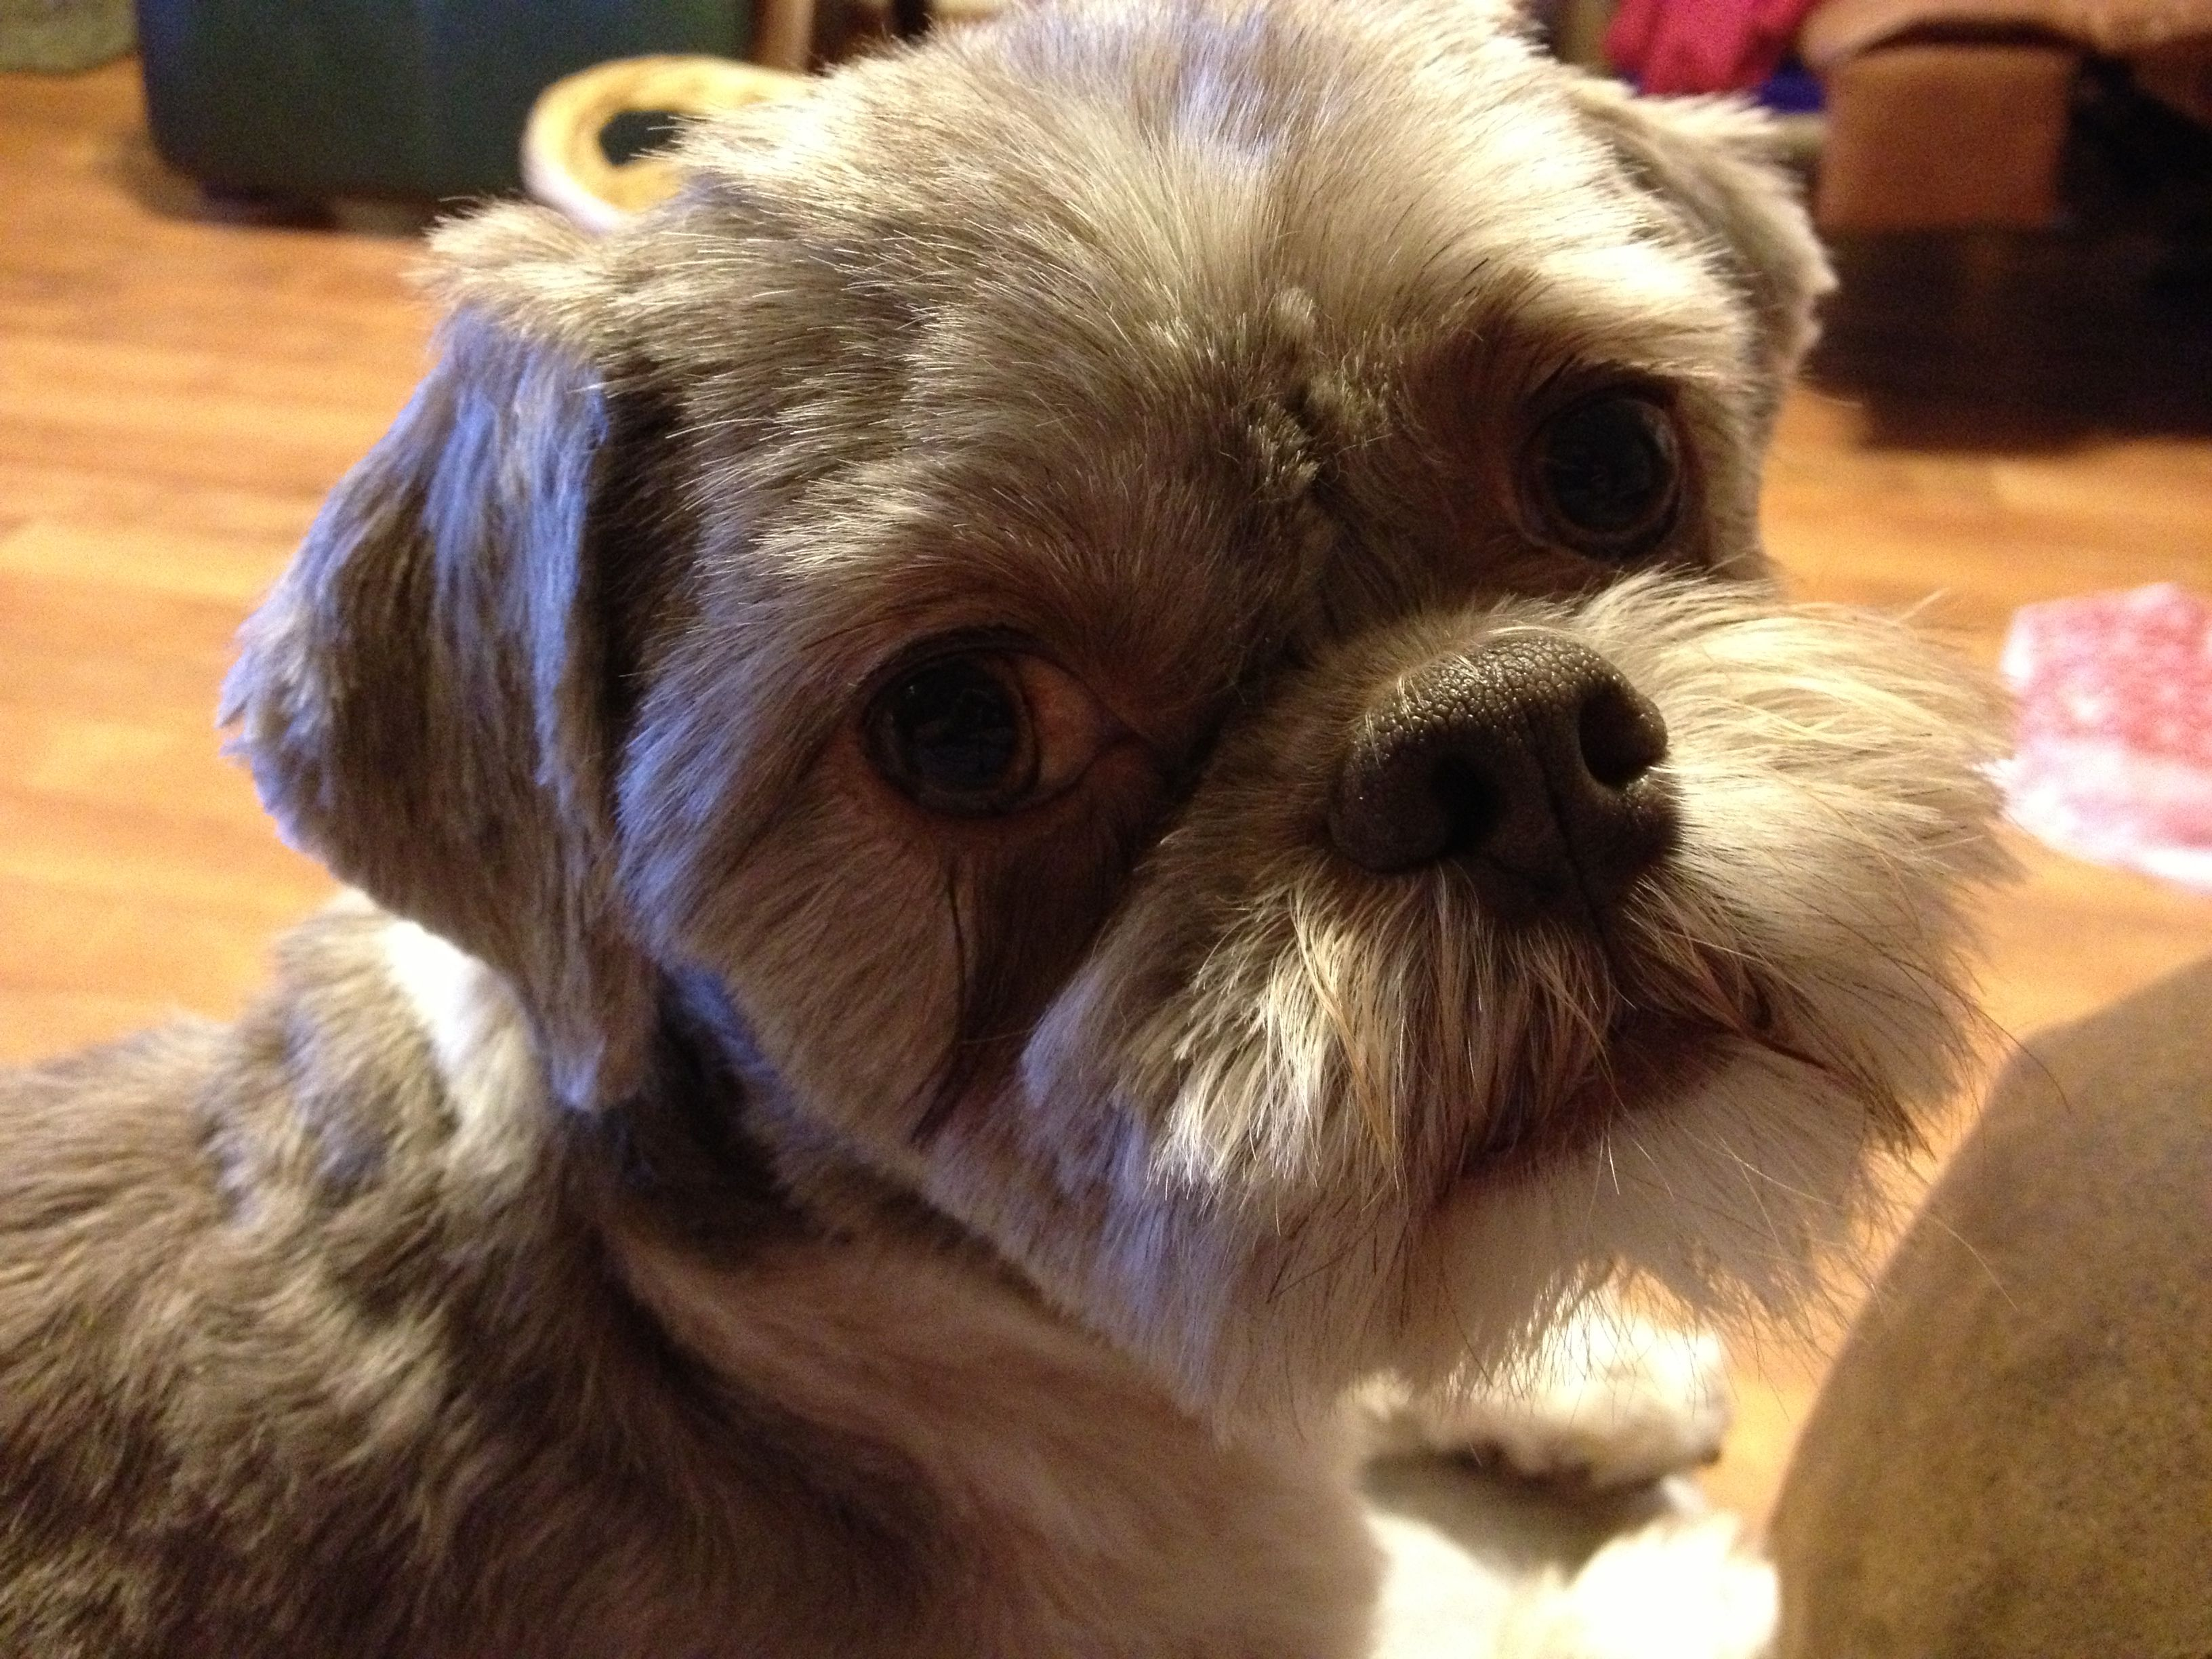 Biscuit The Shih Tzu With His New Short Hair Style So Cute